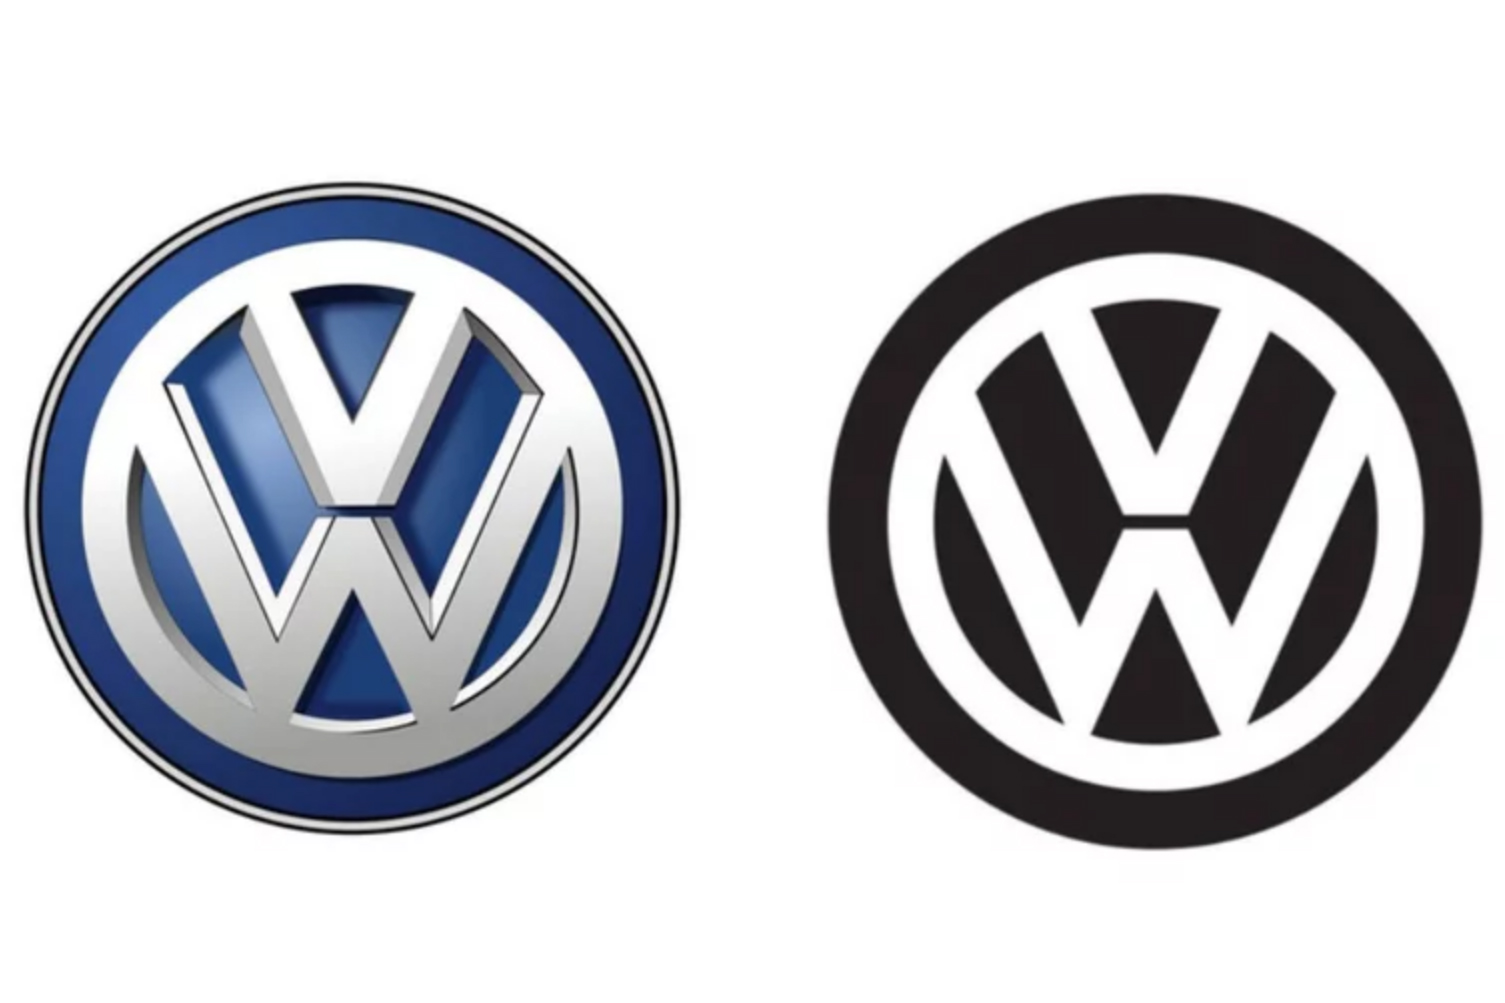 Volkswagen is changing its logo